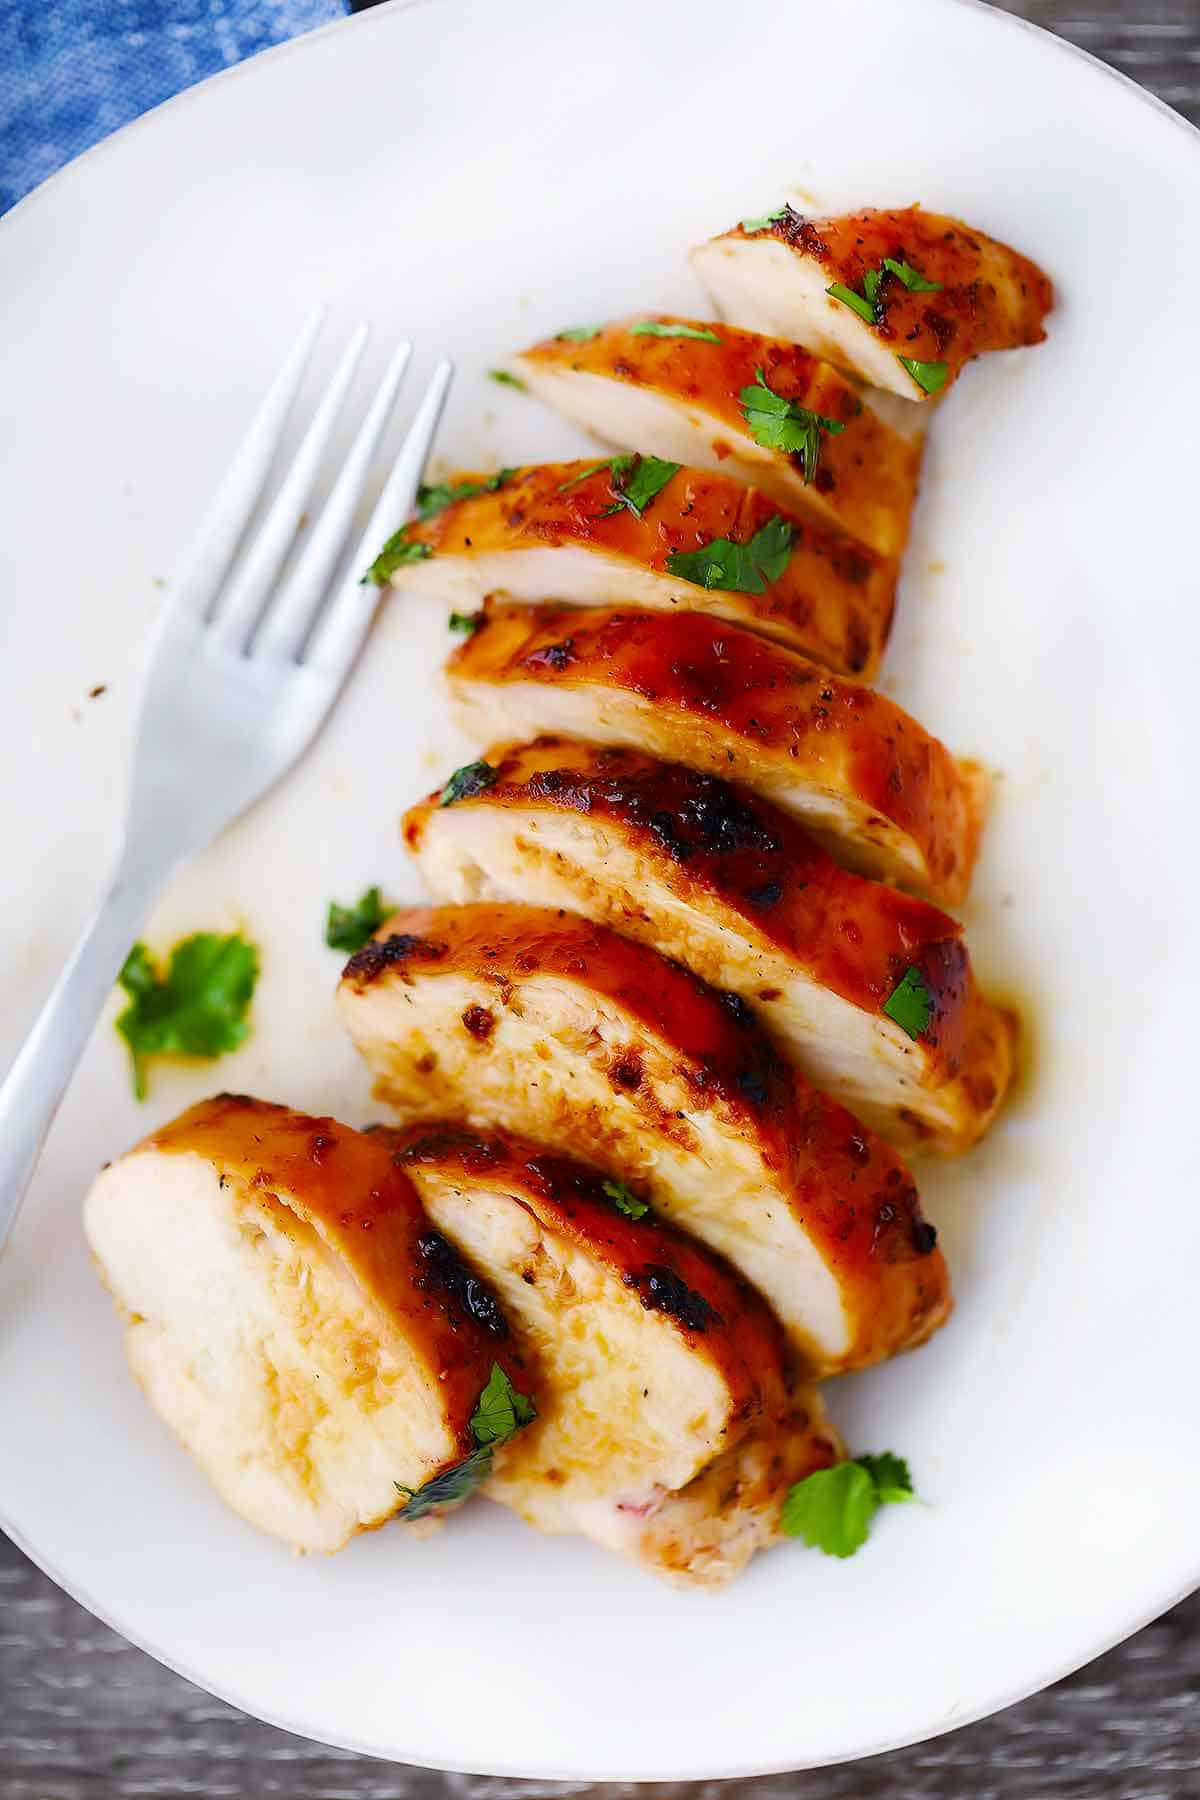 A sliced chicken breast on a white plate with a fork.